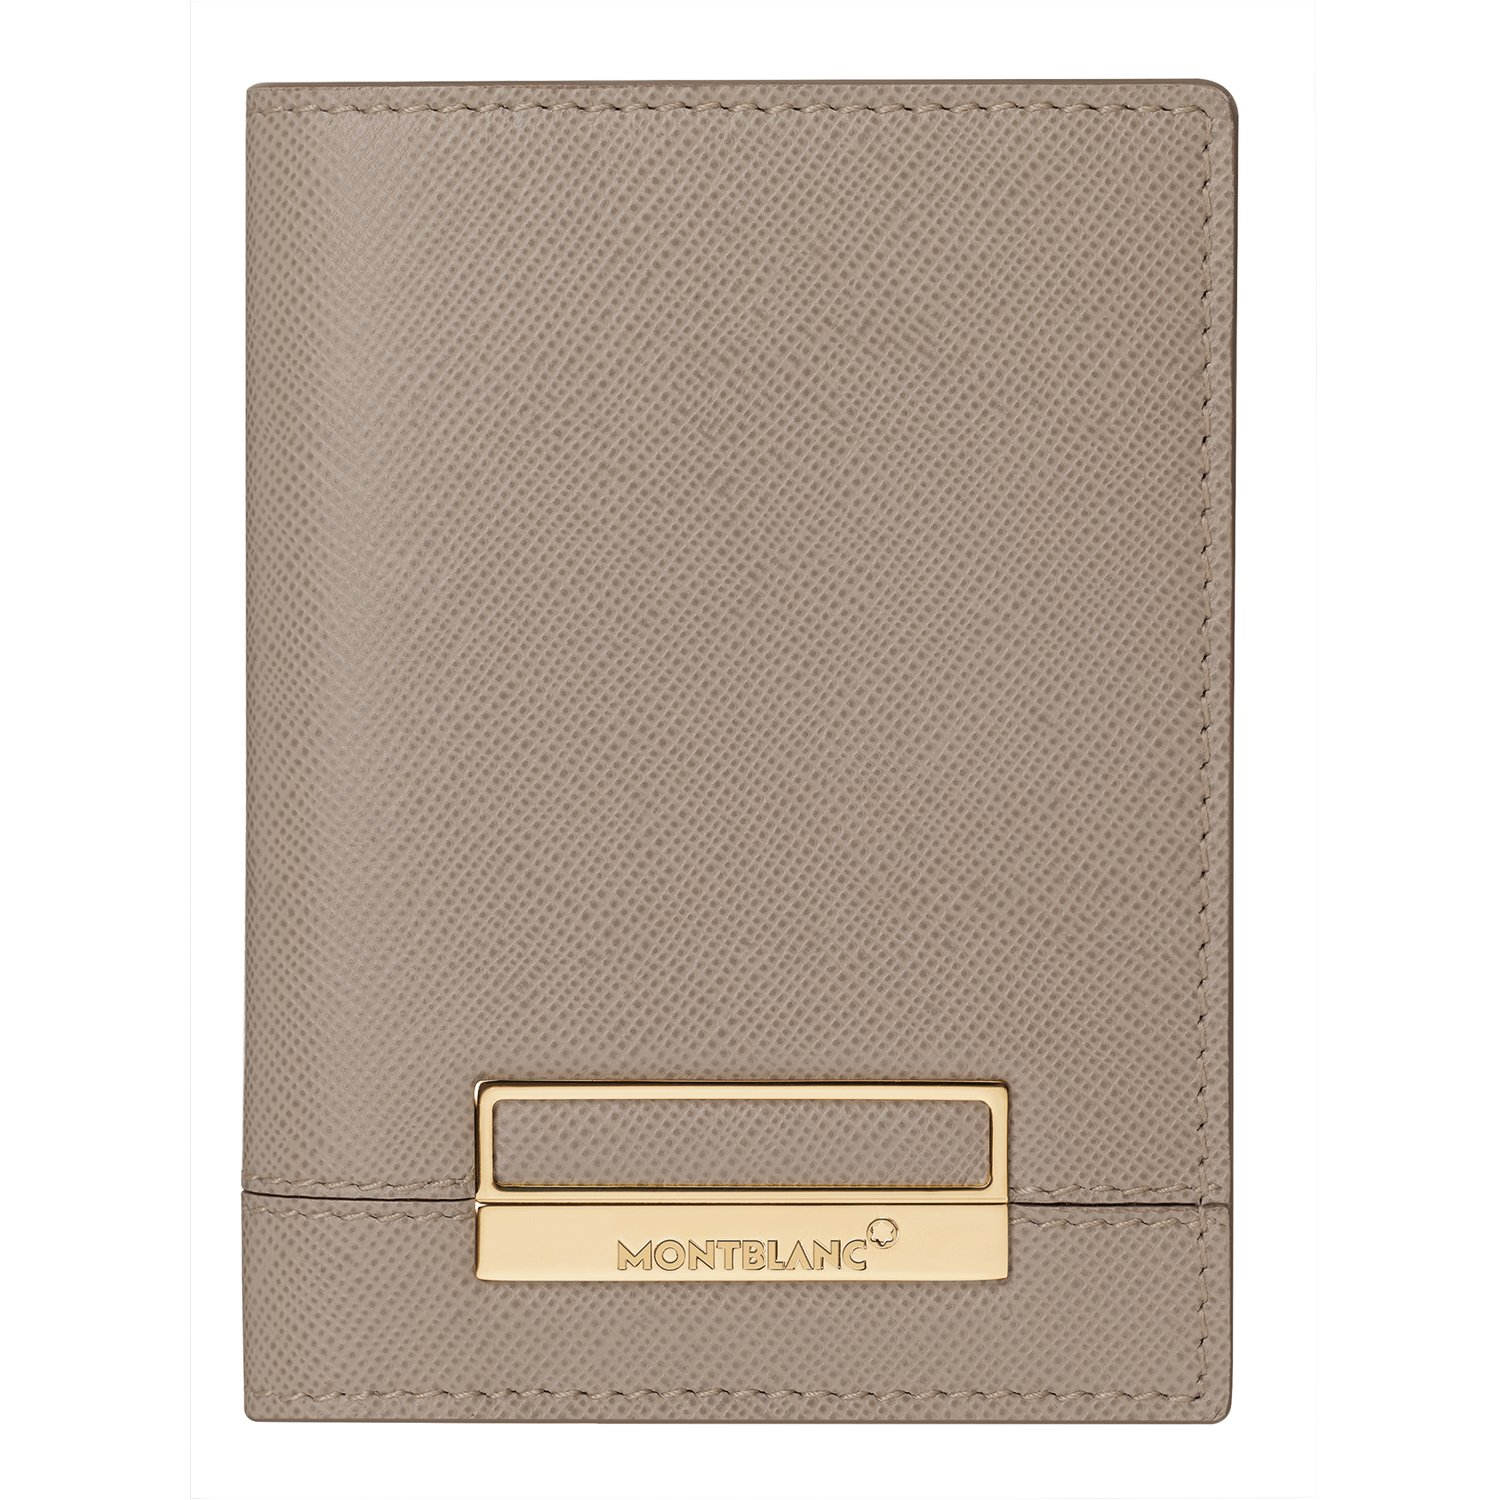 Montblanc 114611 Business Card Holder 4cc Lady